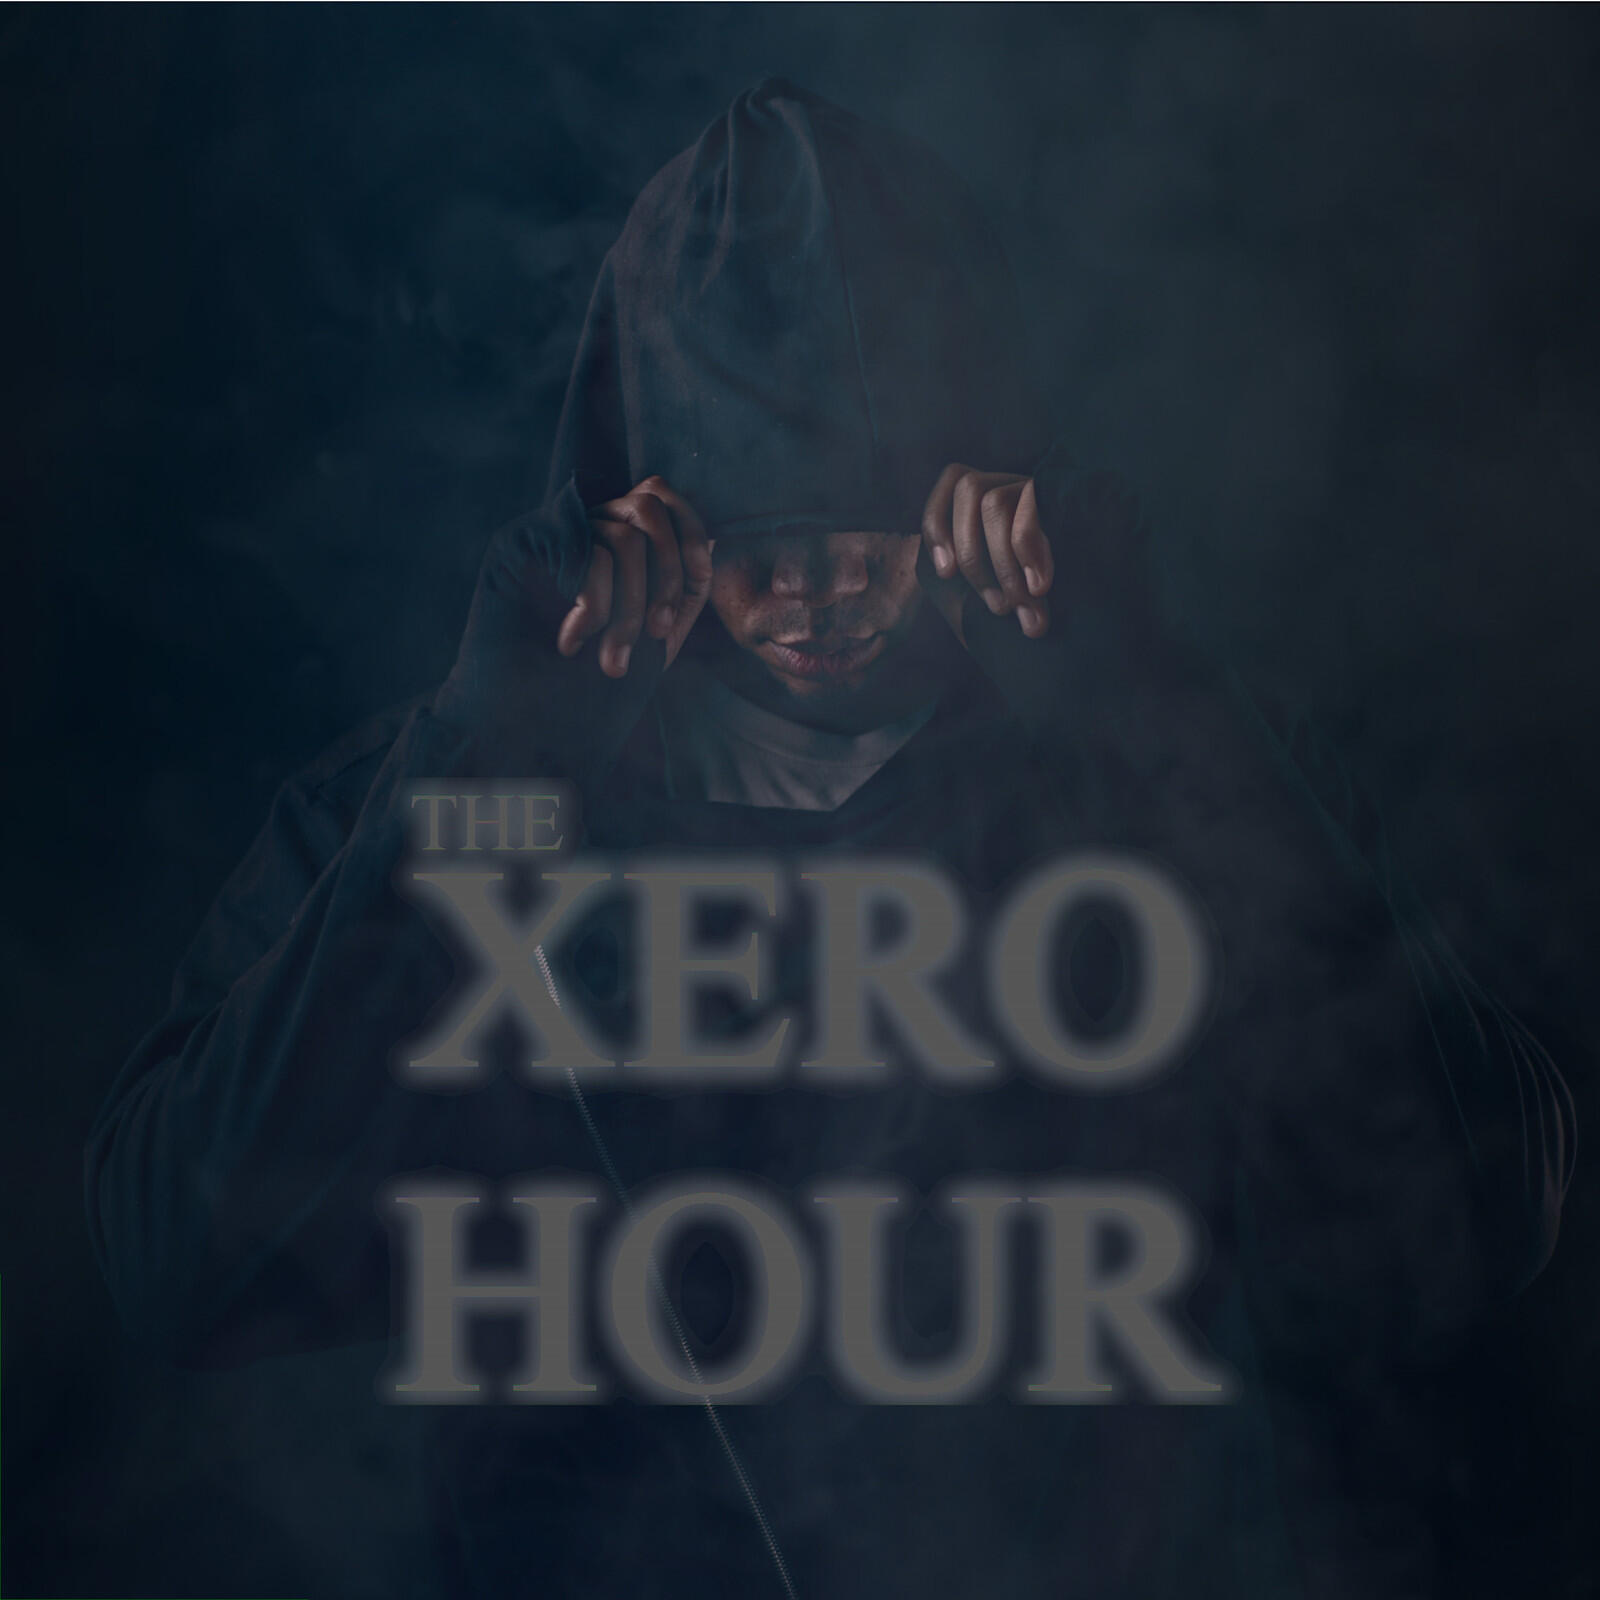 75: Xero Hour Podcast 75 - Racism, CRT, and Raising a Mixed-Race Family